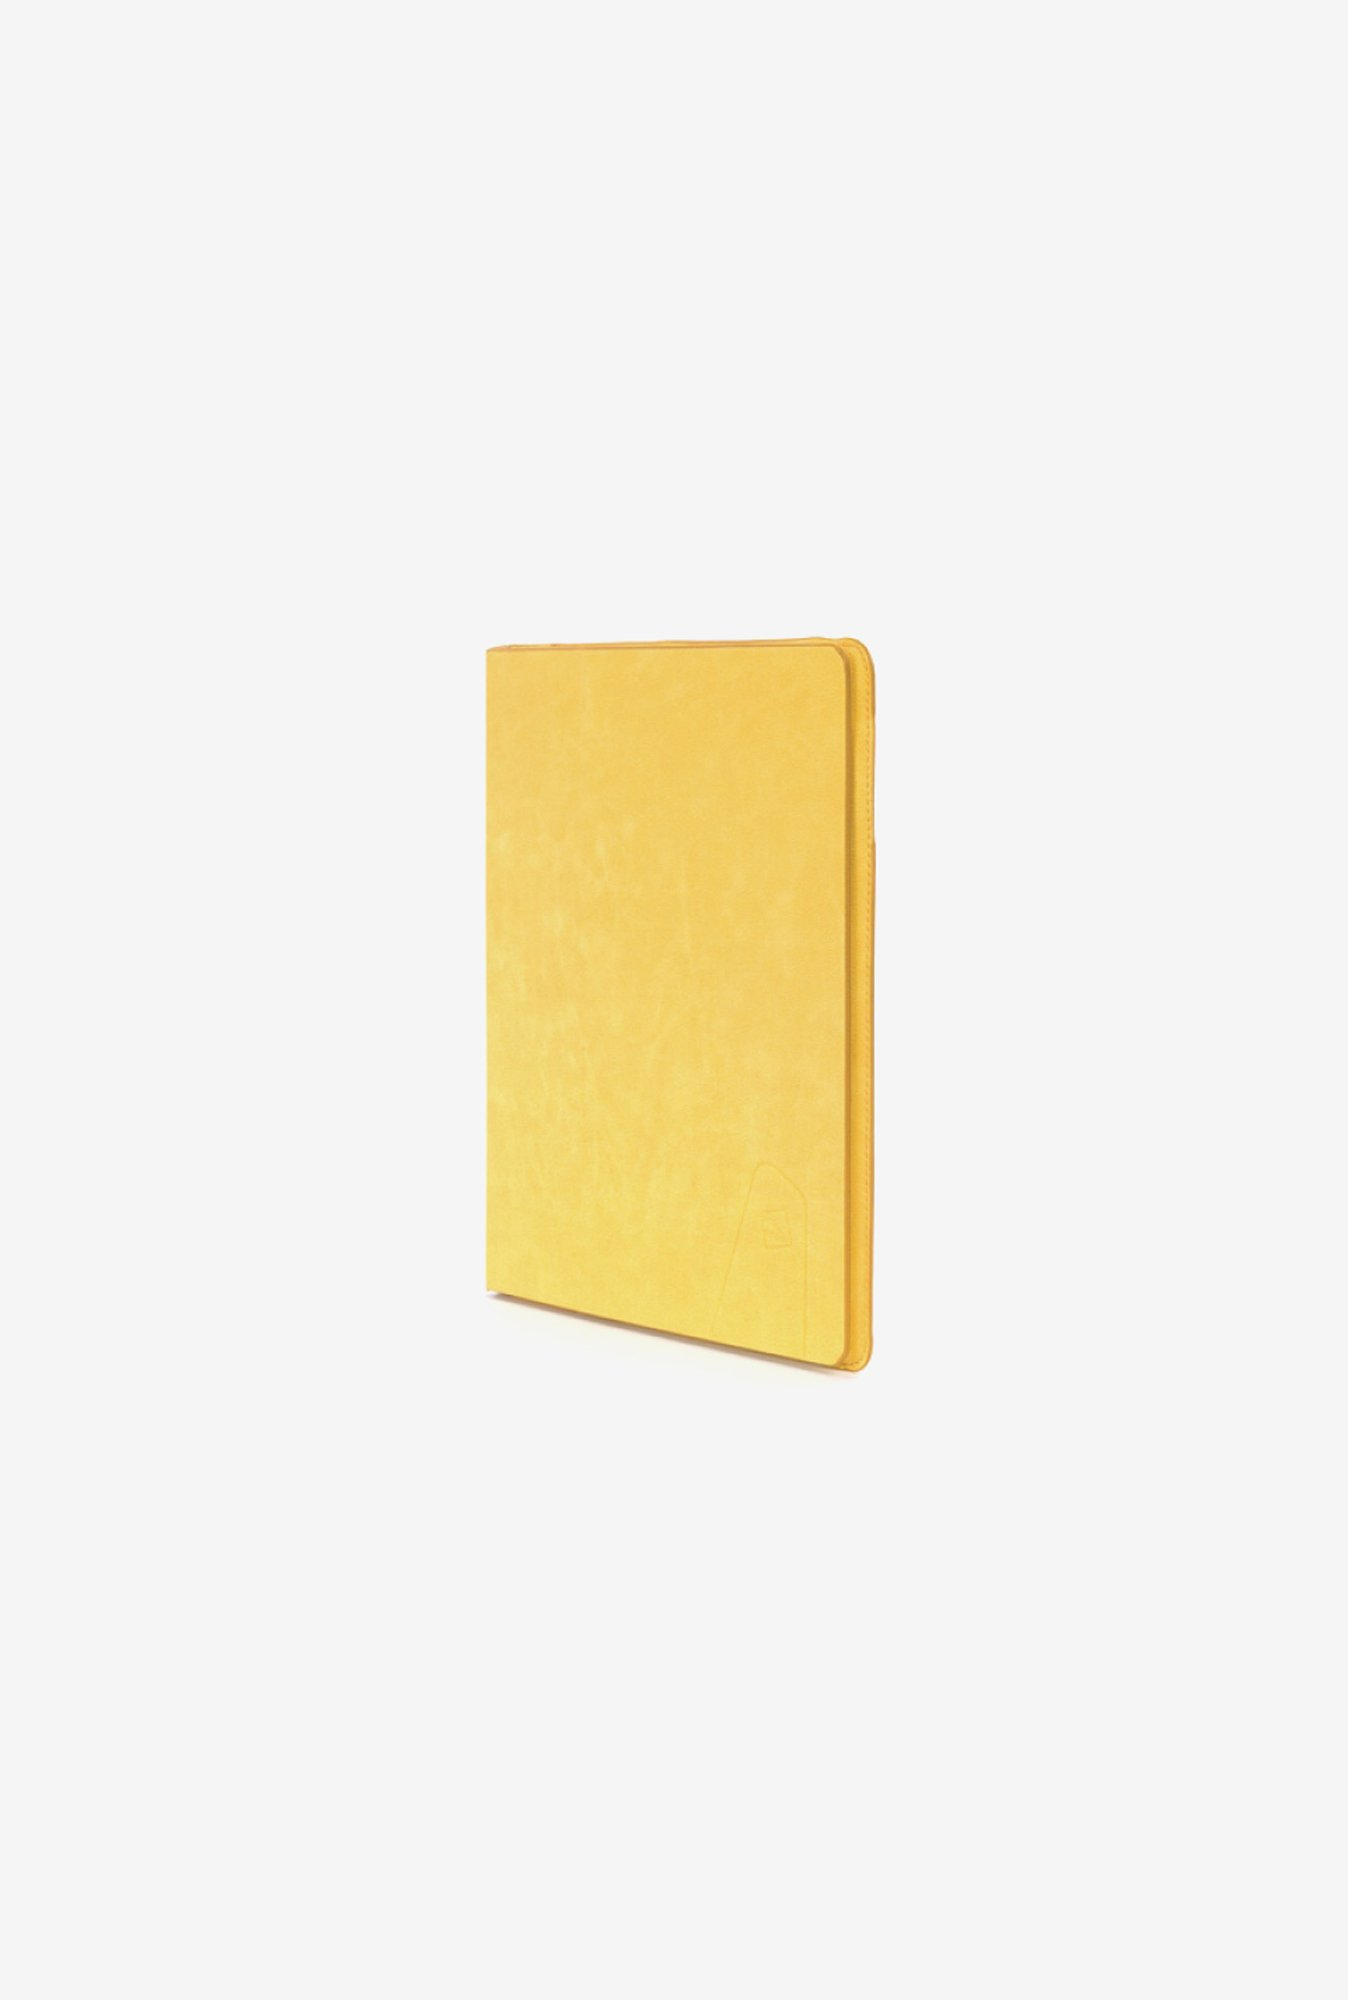 Tucano Ala IPDAL23Y iPad Flip Case Yellow